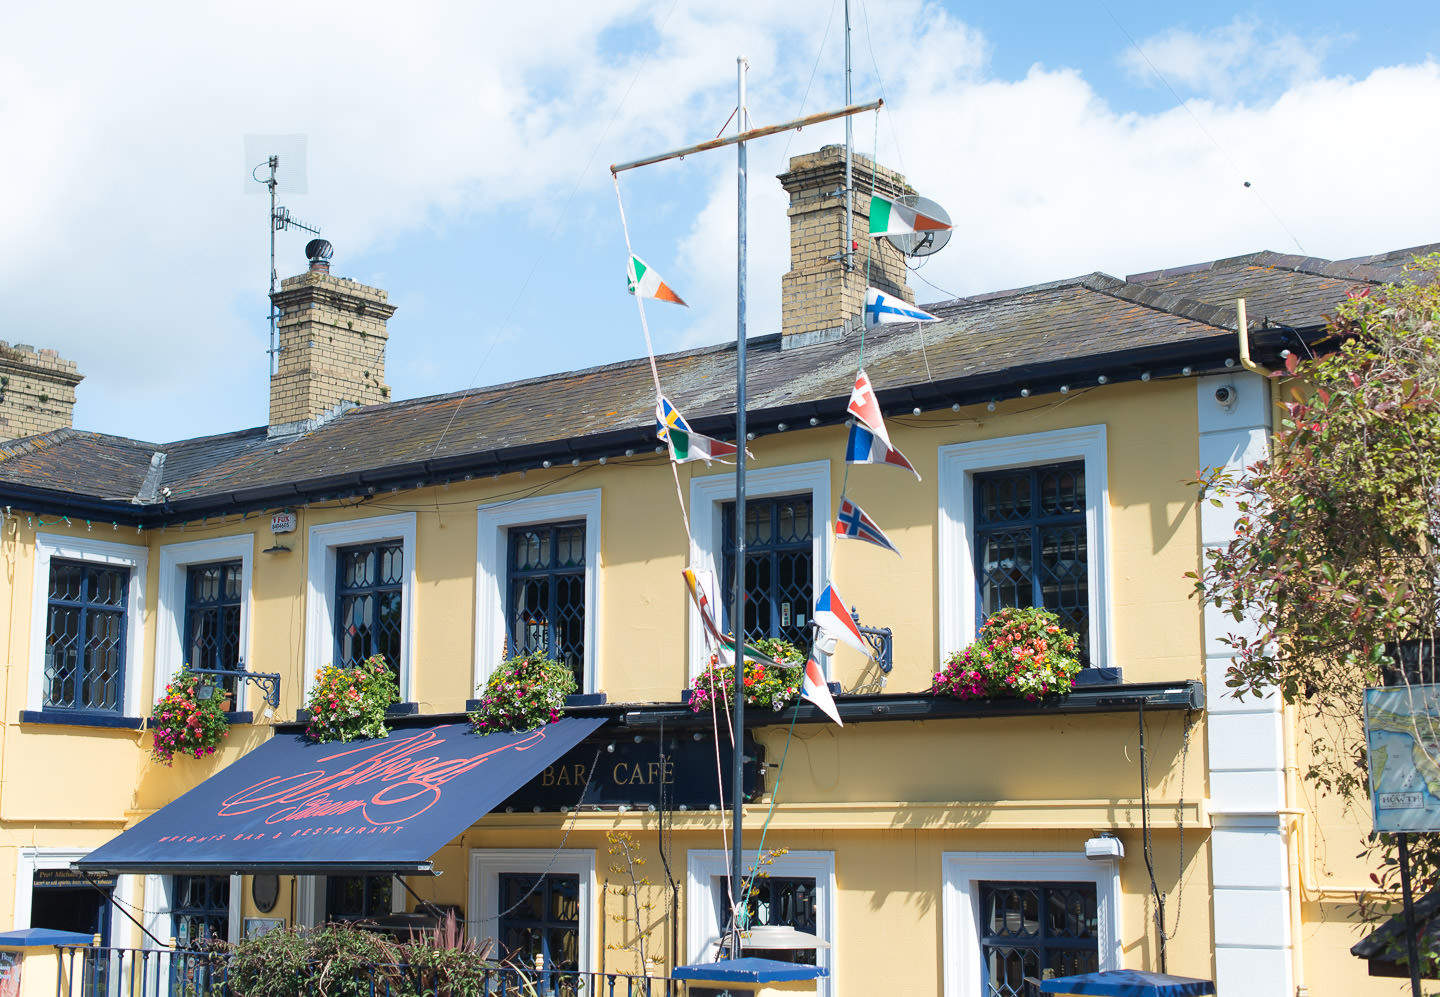 Blog-Mode-And-The-City-Lifestyle-Long-Week-End-Irlande-Howth-2